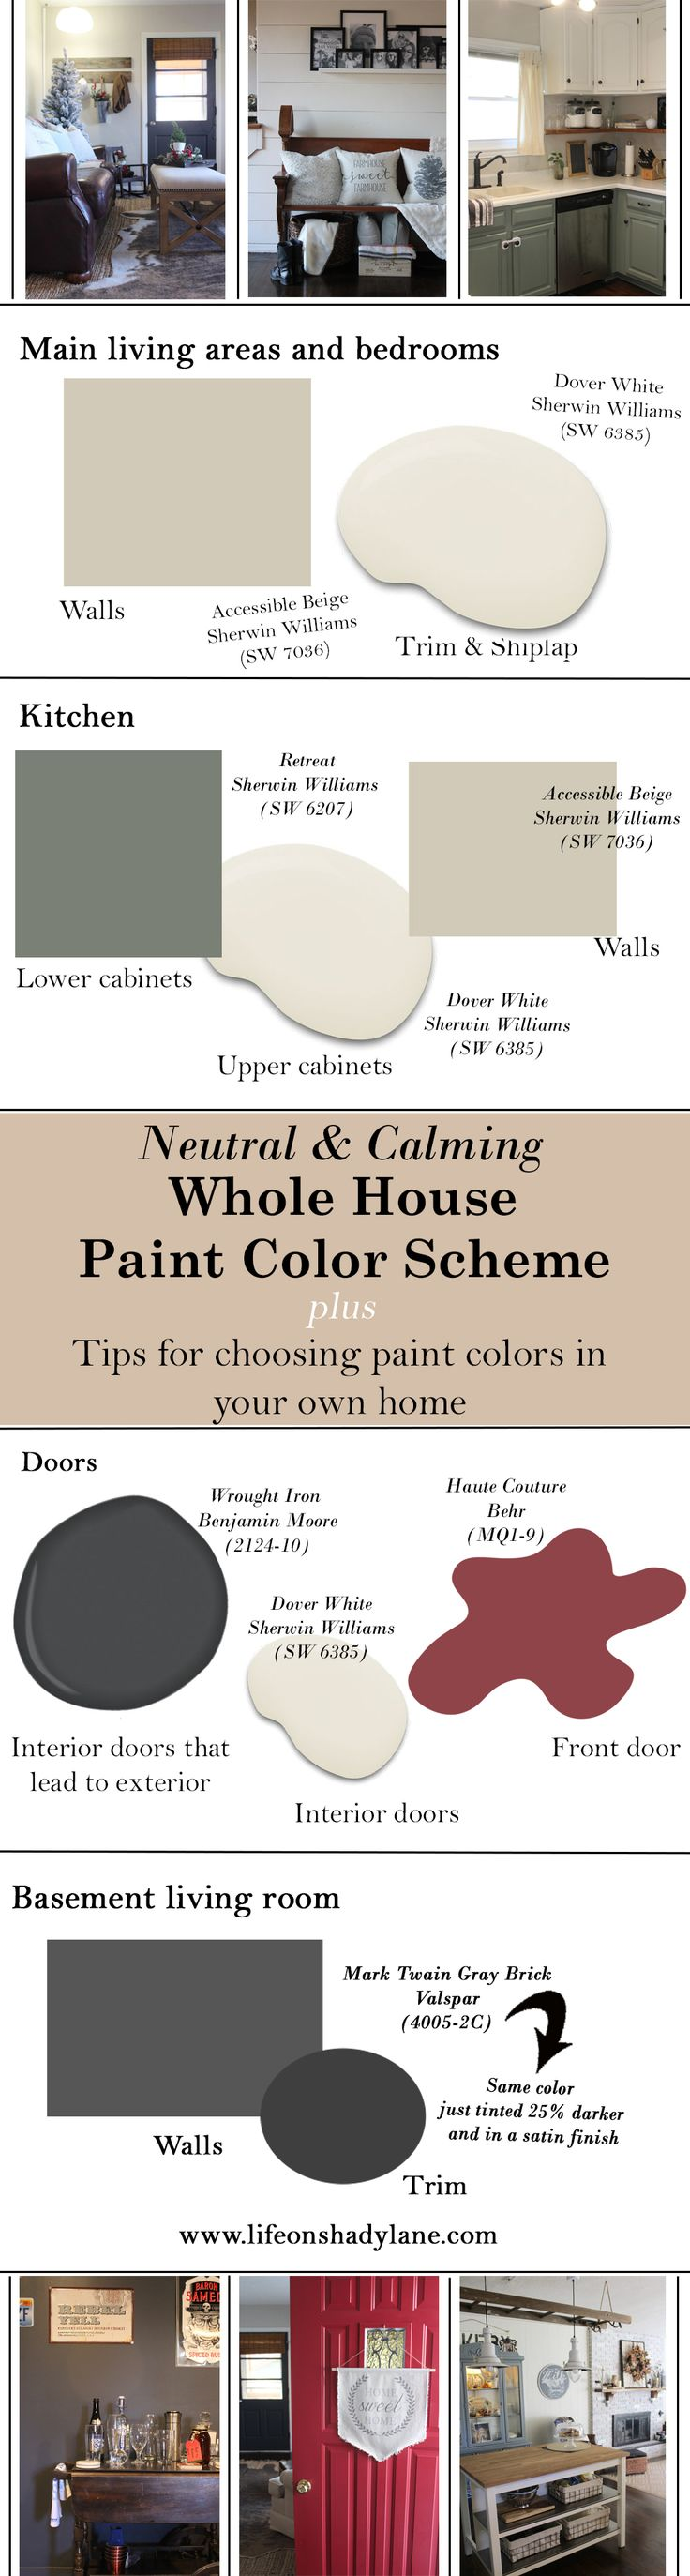 517 best sherwin williams color magic images on pinterest for Whole house neutral paint colors